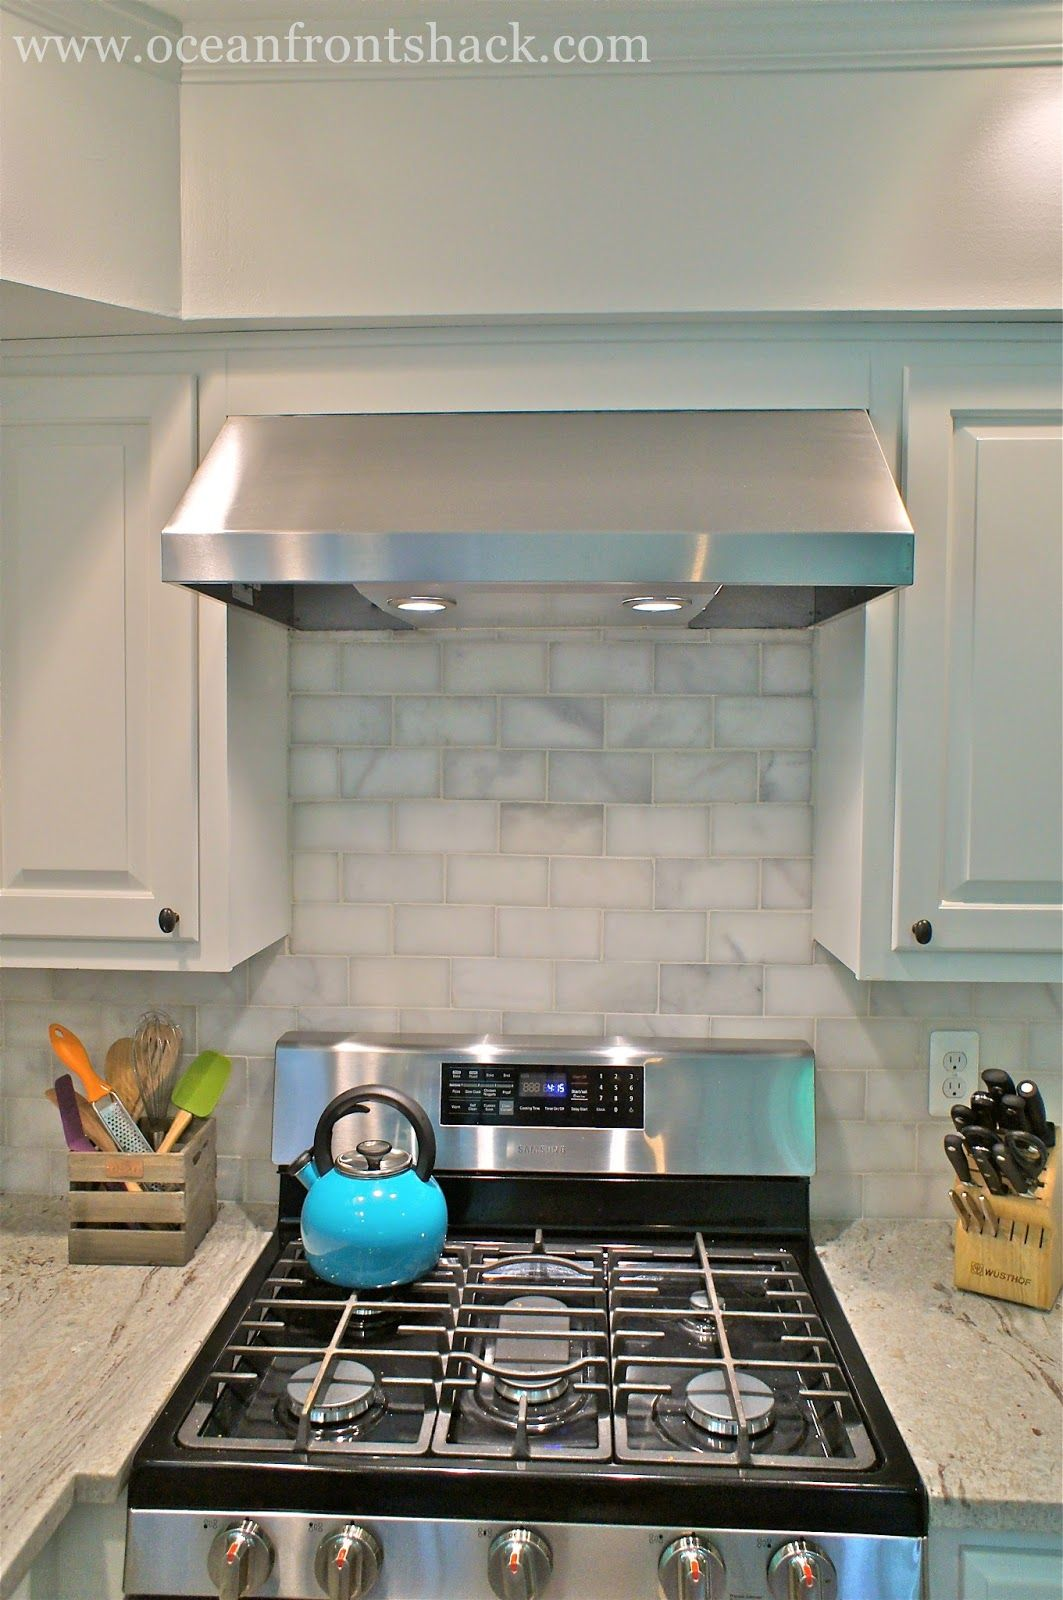 Replacing Microwave With Range Hood Replace A Built In Microwave With A Stylish Range Hood